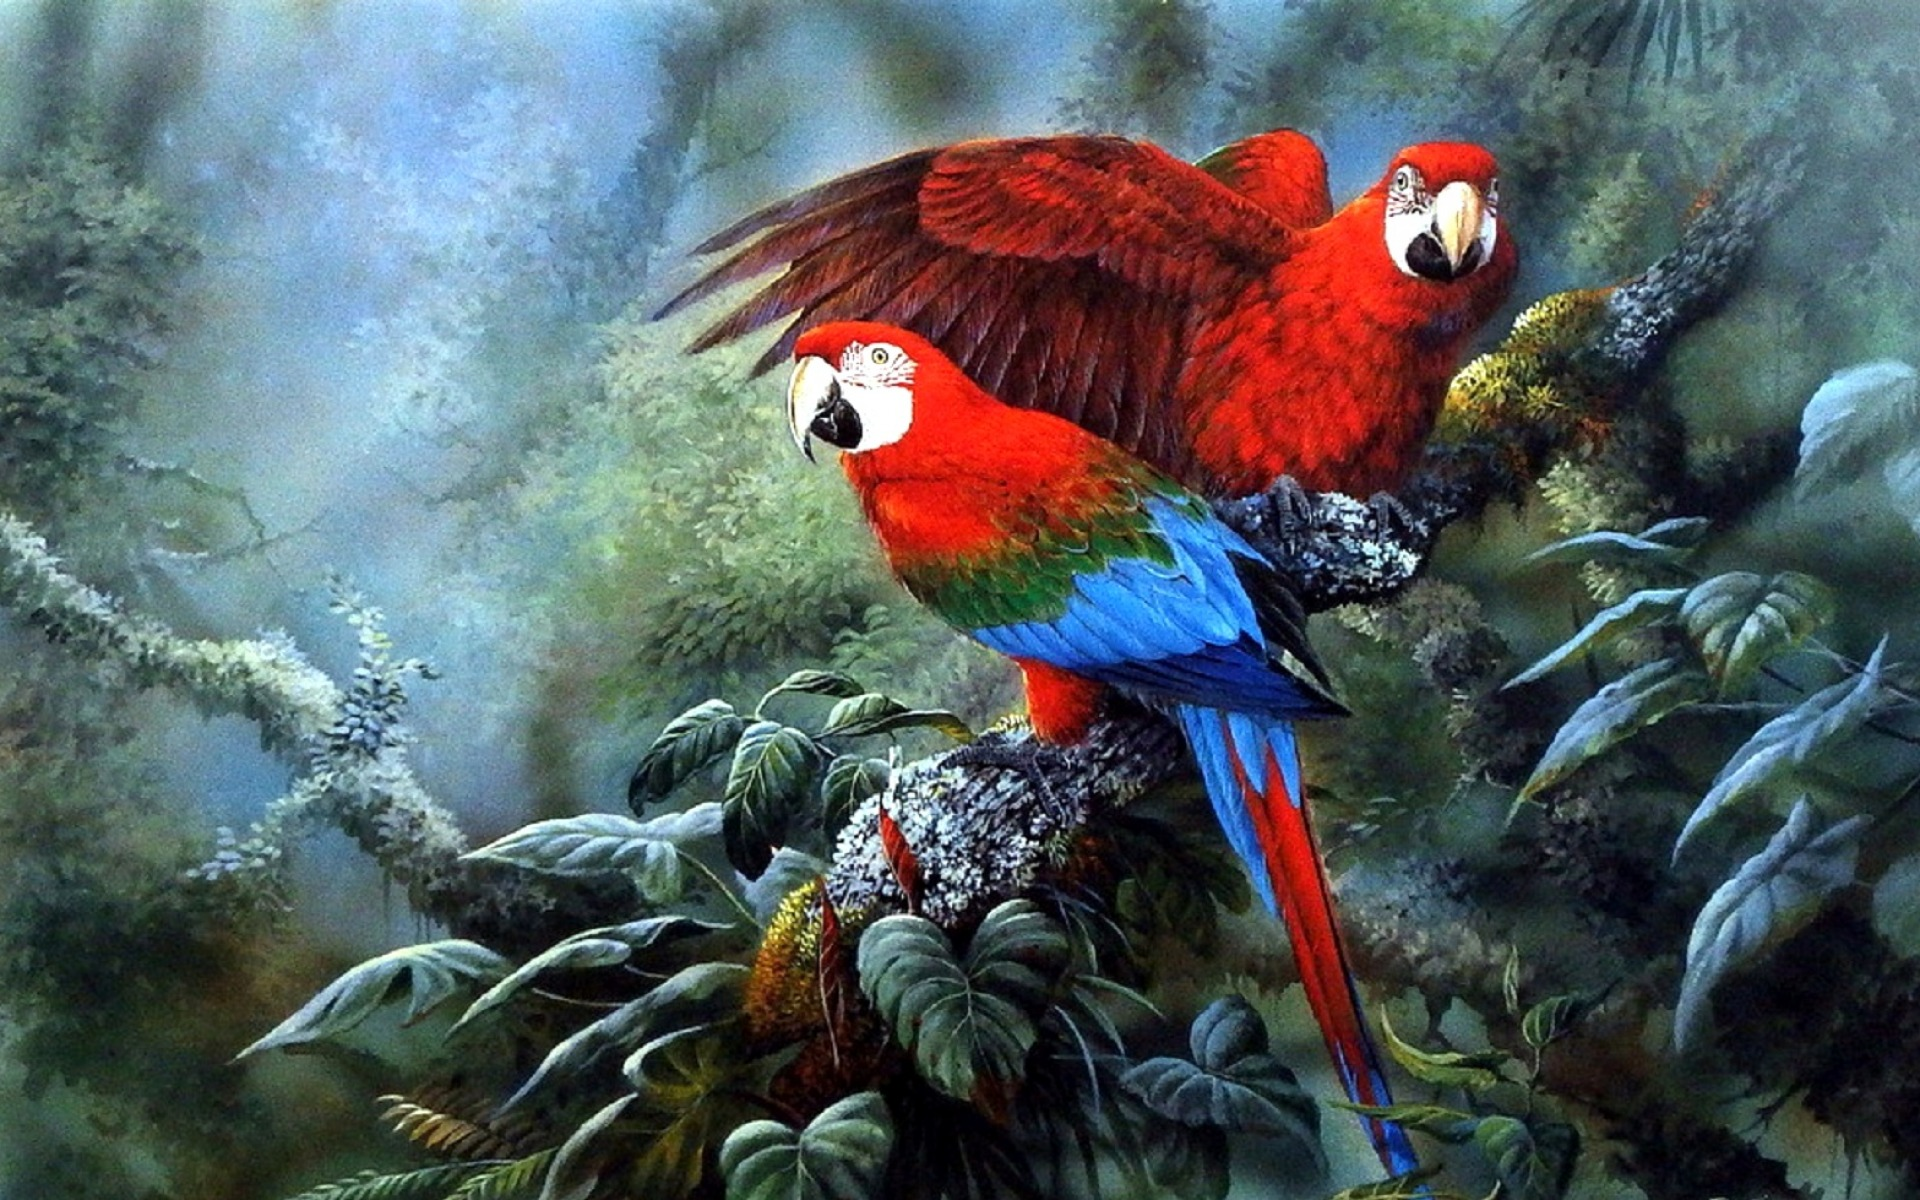 Cute Animated Hd Wallpapers Bright Macaws Couple Jungle Wallpapers Bright Macaws